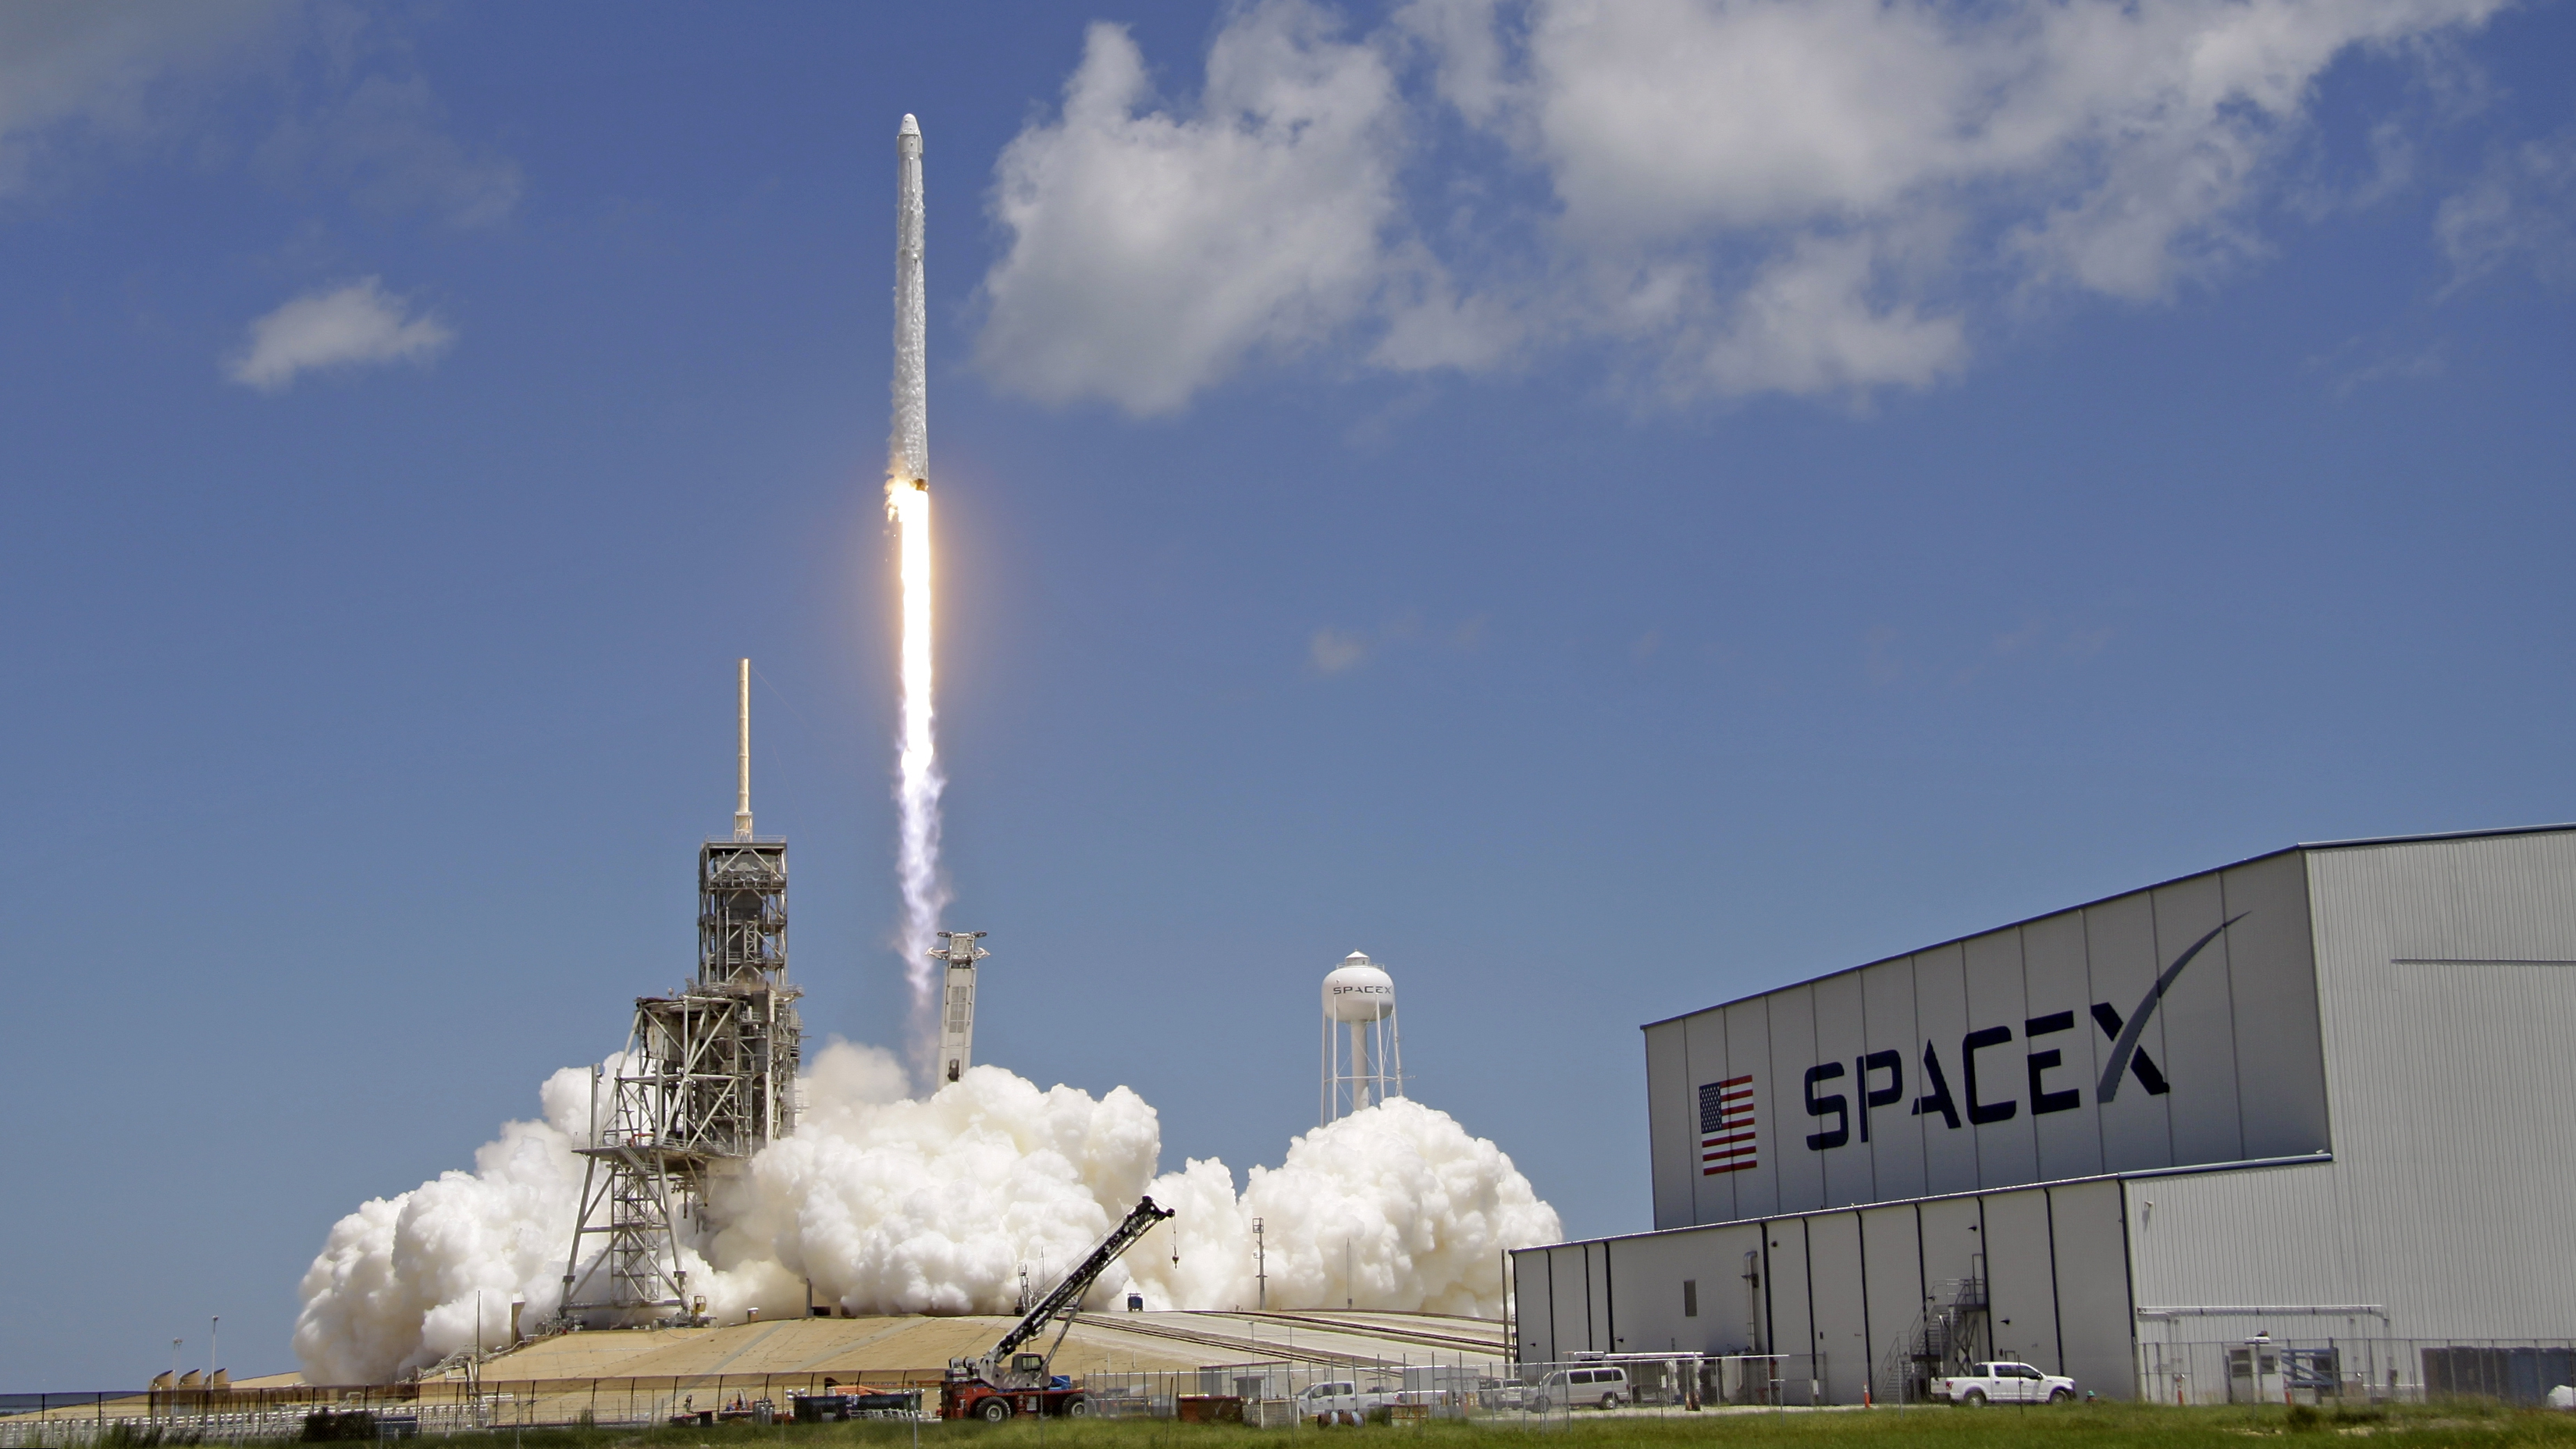 A Falcon 9 SpaceX rocket launches from pad 39A at the Kennedy Space Center in Cape Canaveral, Fla., Monday, Aug. 14, 2017. The mission of the spacecraft is a cargo and supply delivery to the International Space Station.(AP Photo/John Raoux)